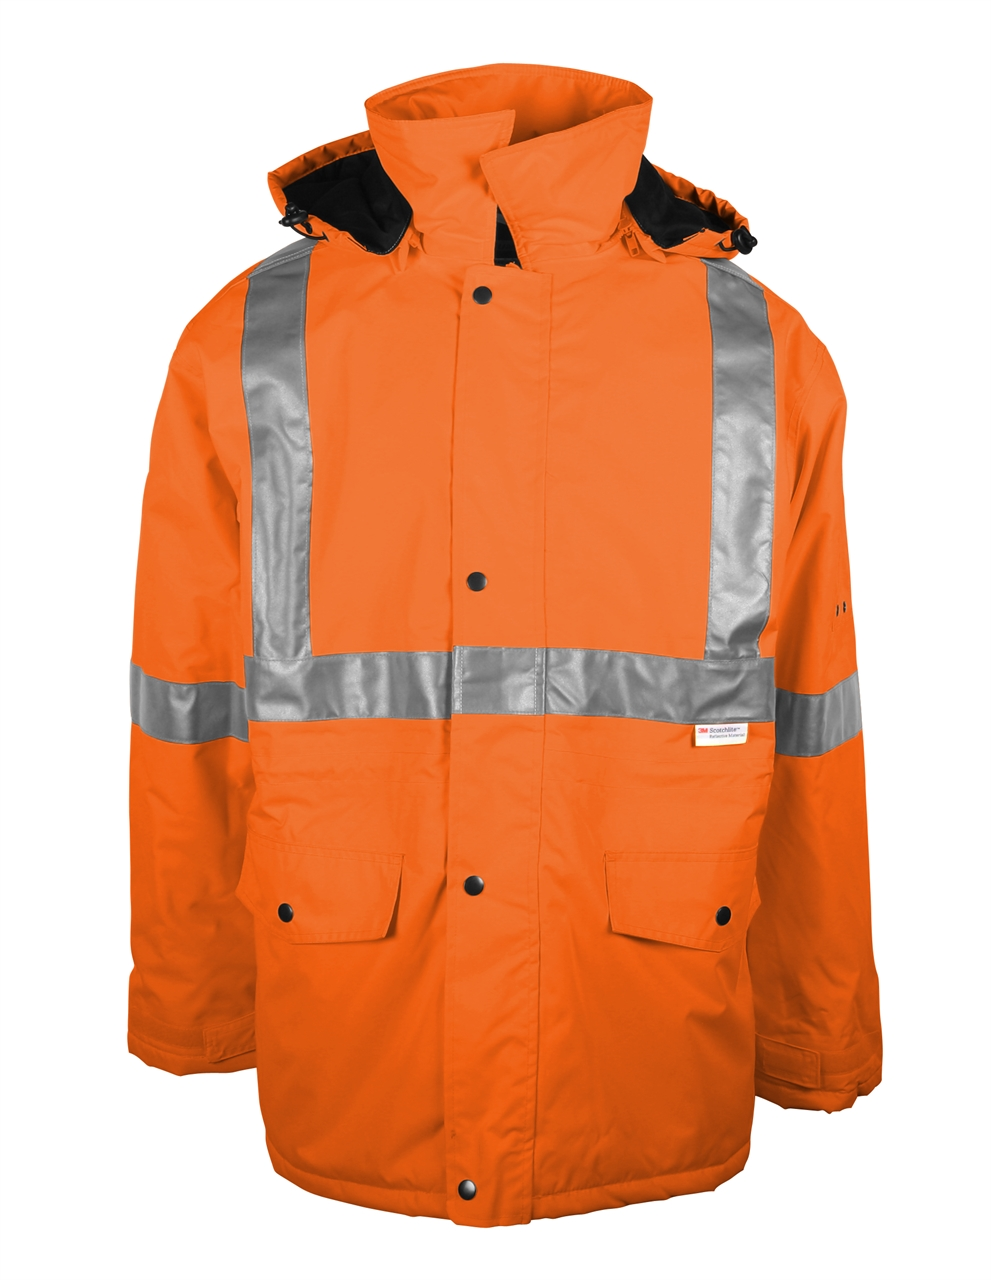 Picture of Sumaggo High Visibility Winter Parka Jacket